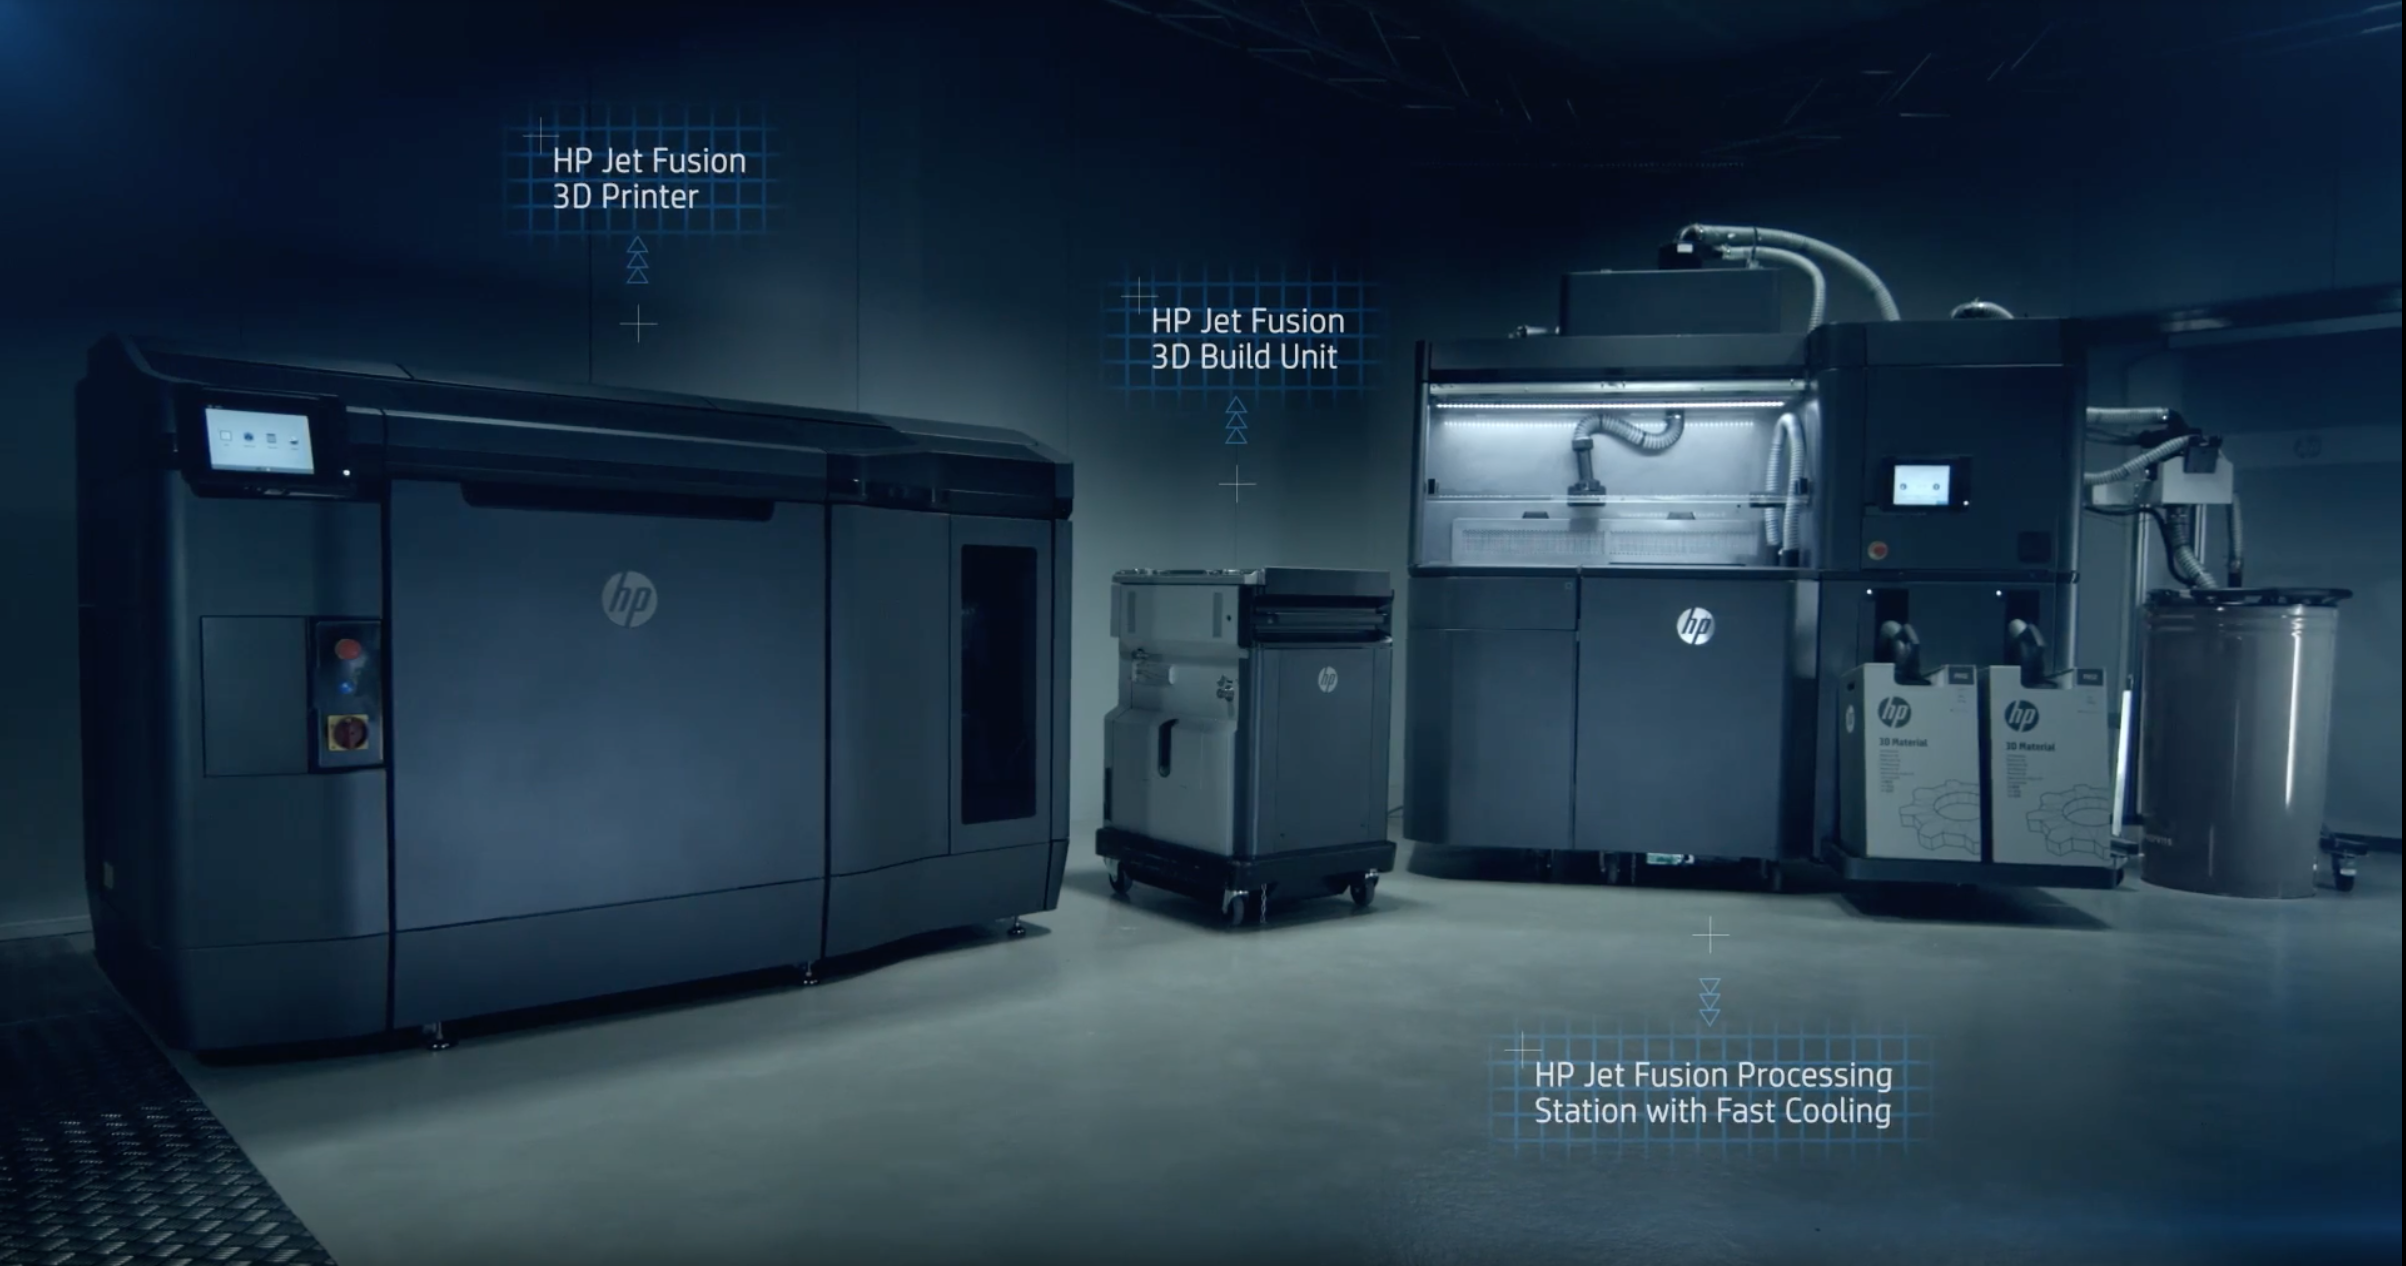 HP 3D Jet Fusion Printing System